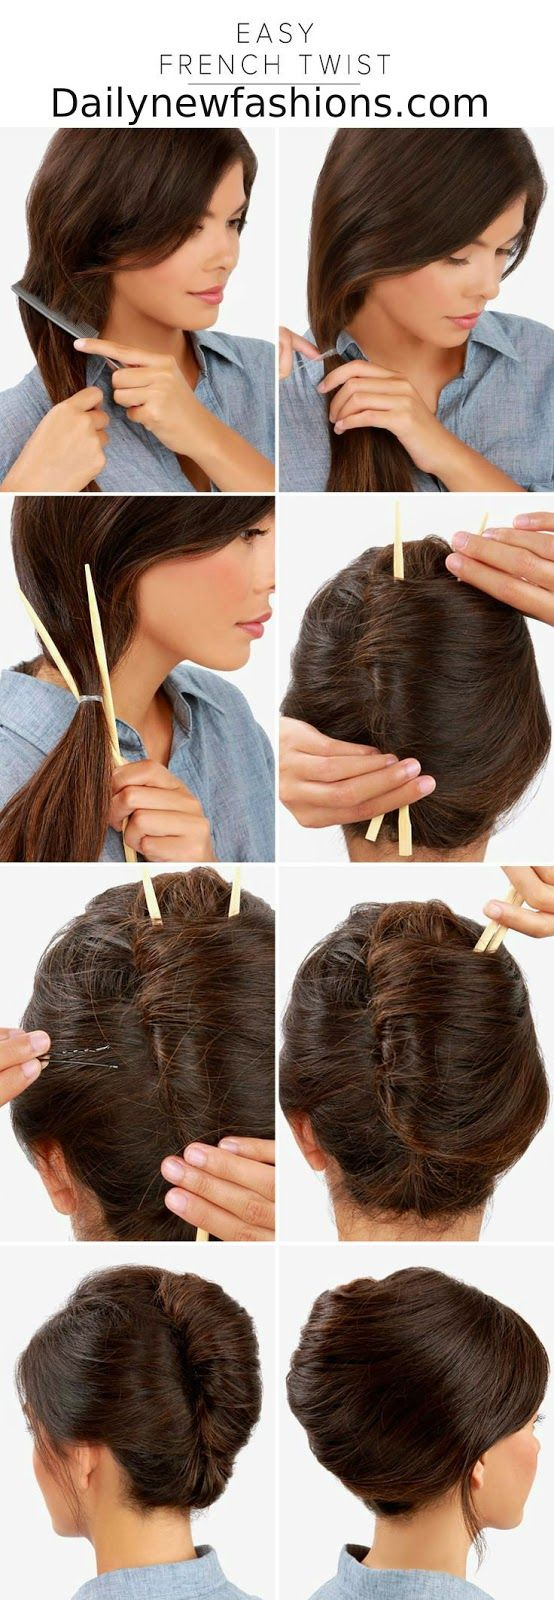 Easy french twist hair style ideas pinterest easy french twist